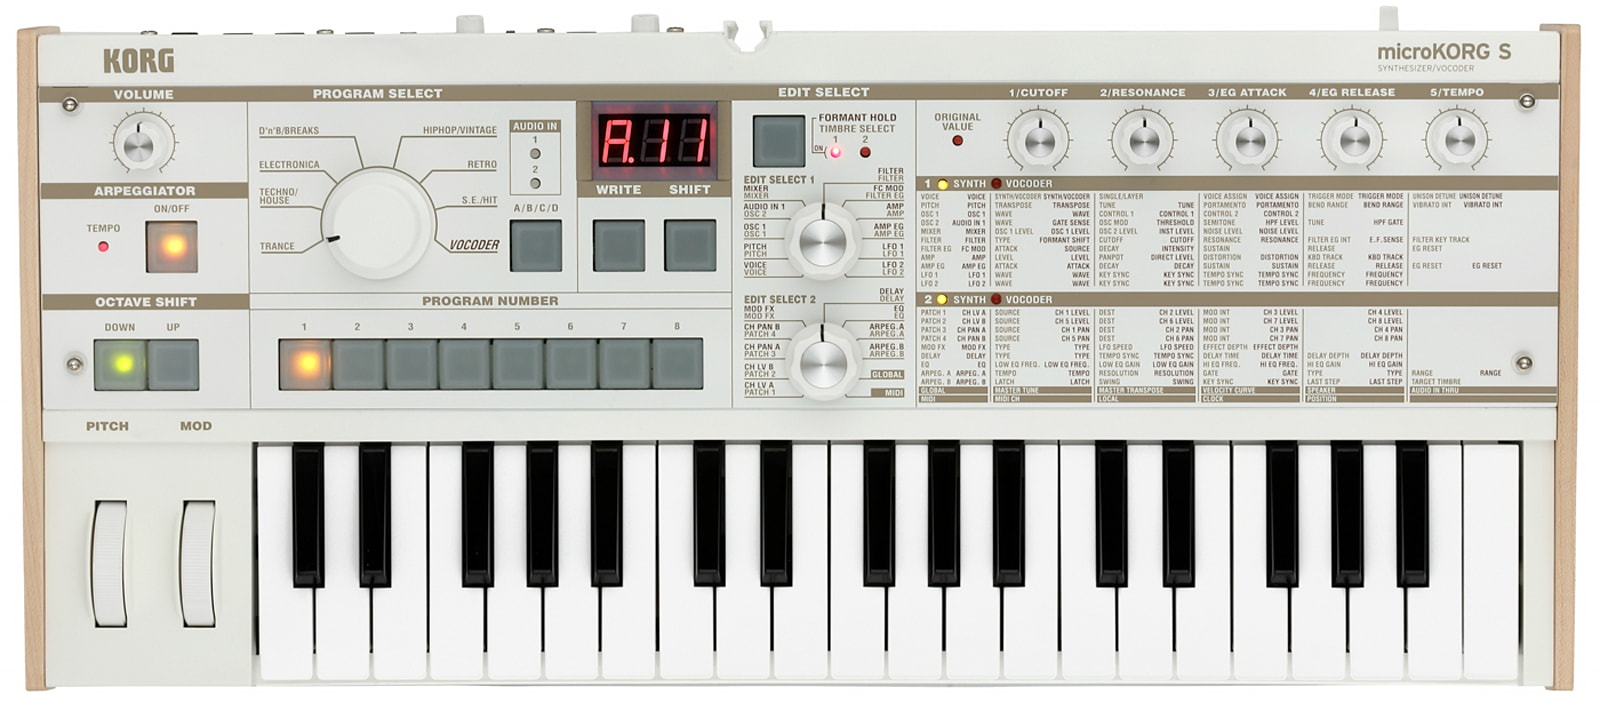 Korg announces microKorg-S with more sounds and user presets